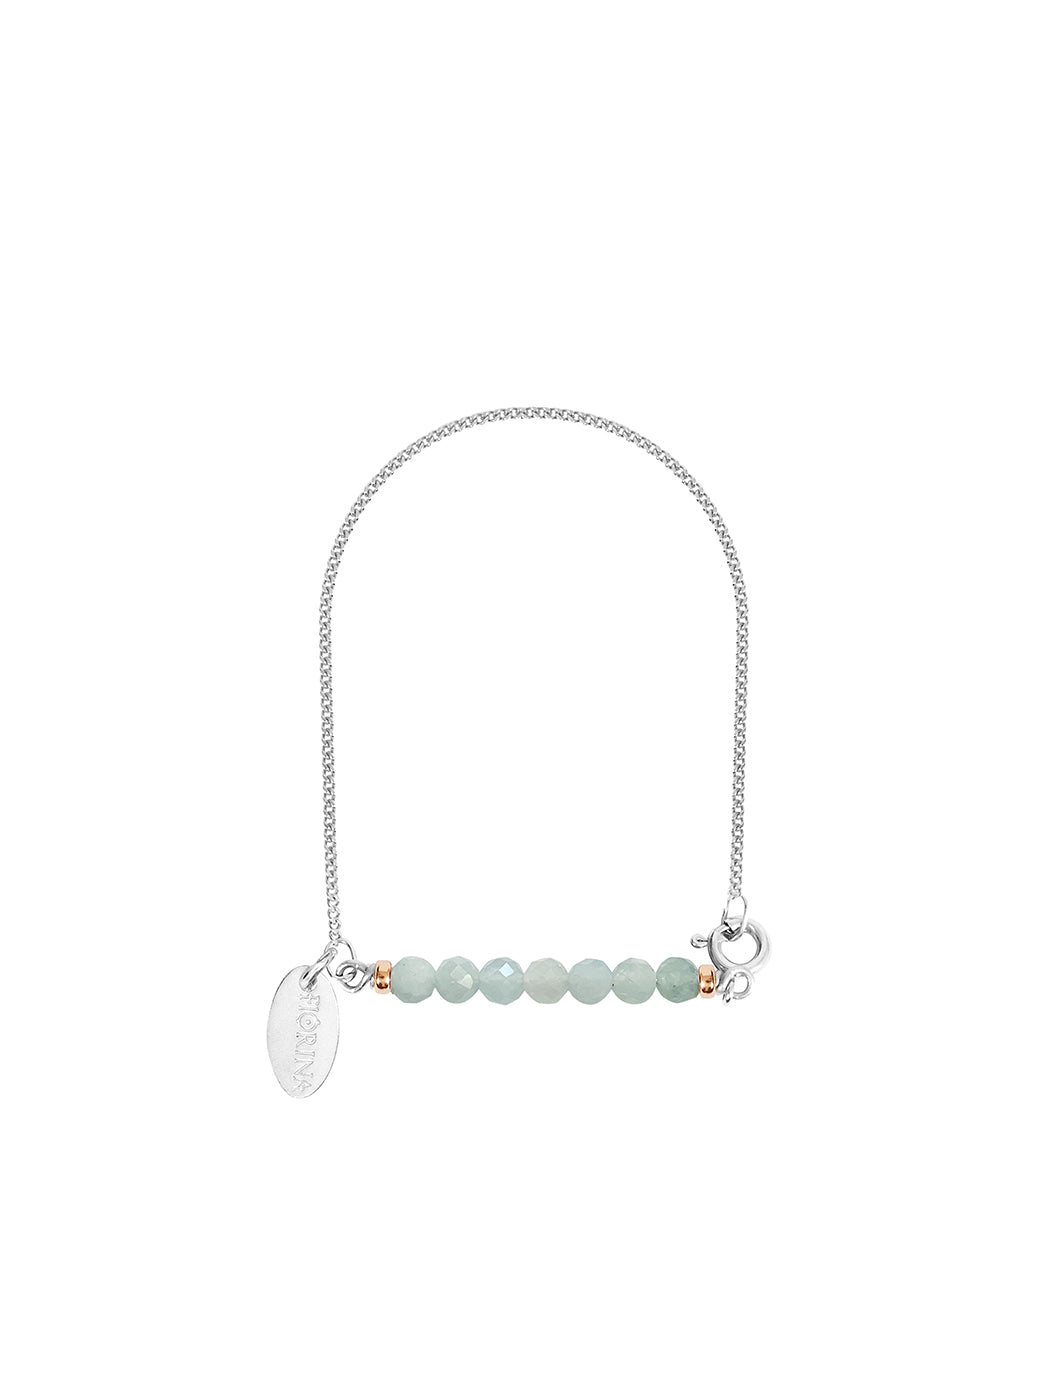 Fiorina Jewellery Silver Friendship Bracelet Aquamarine